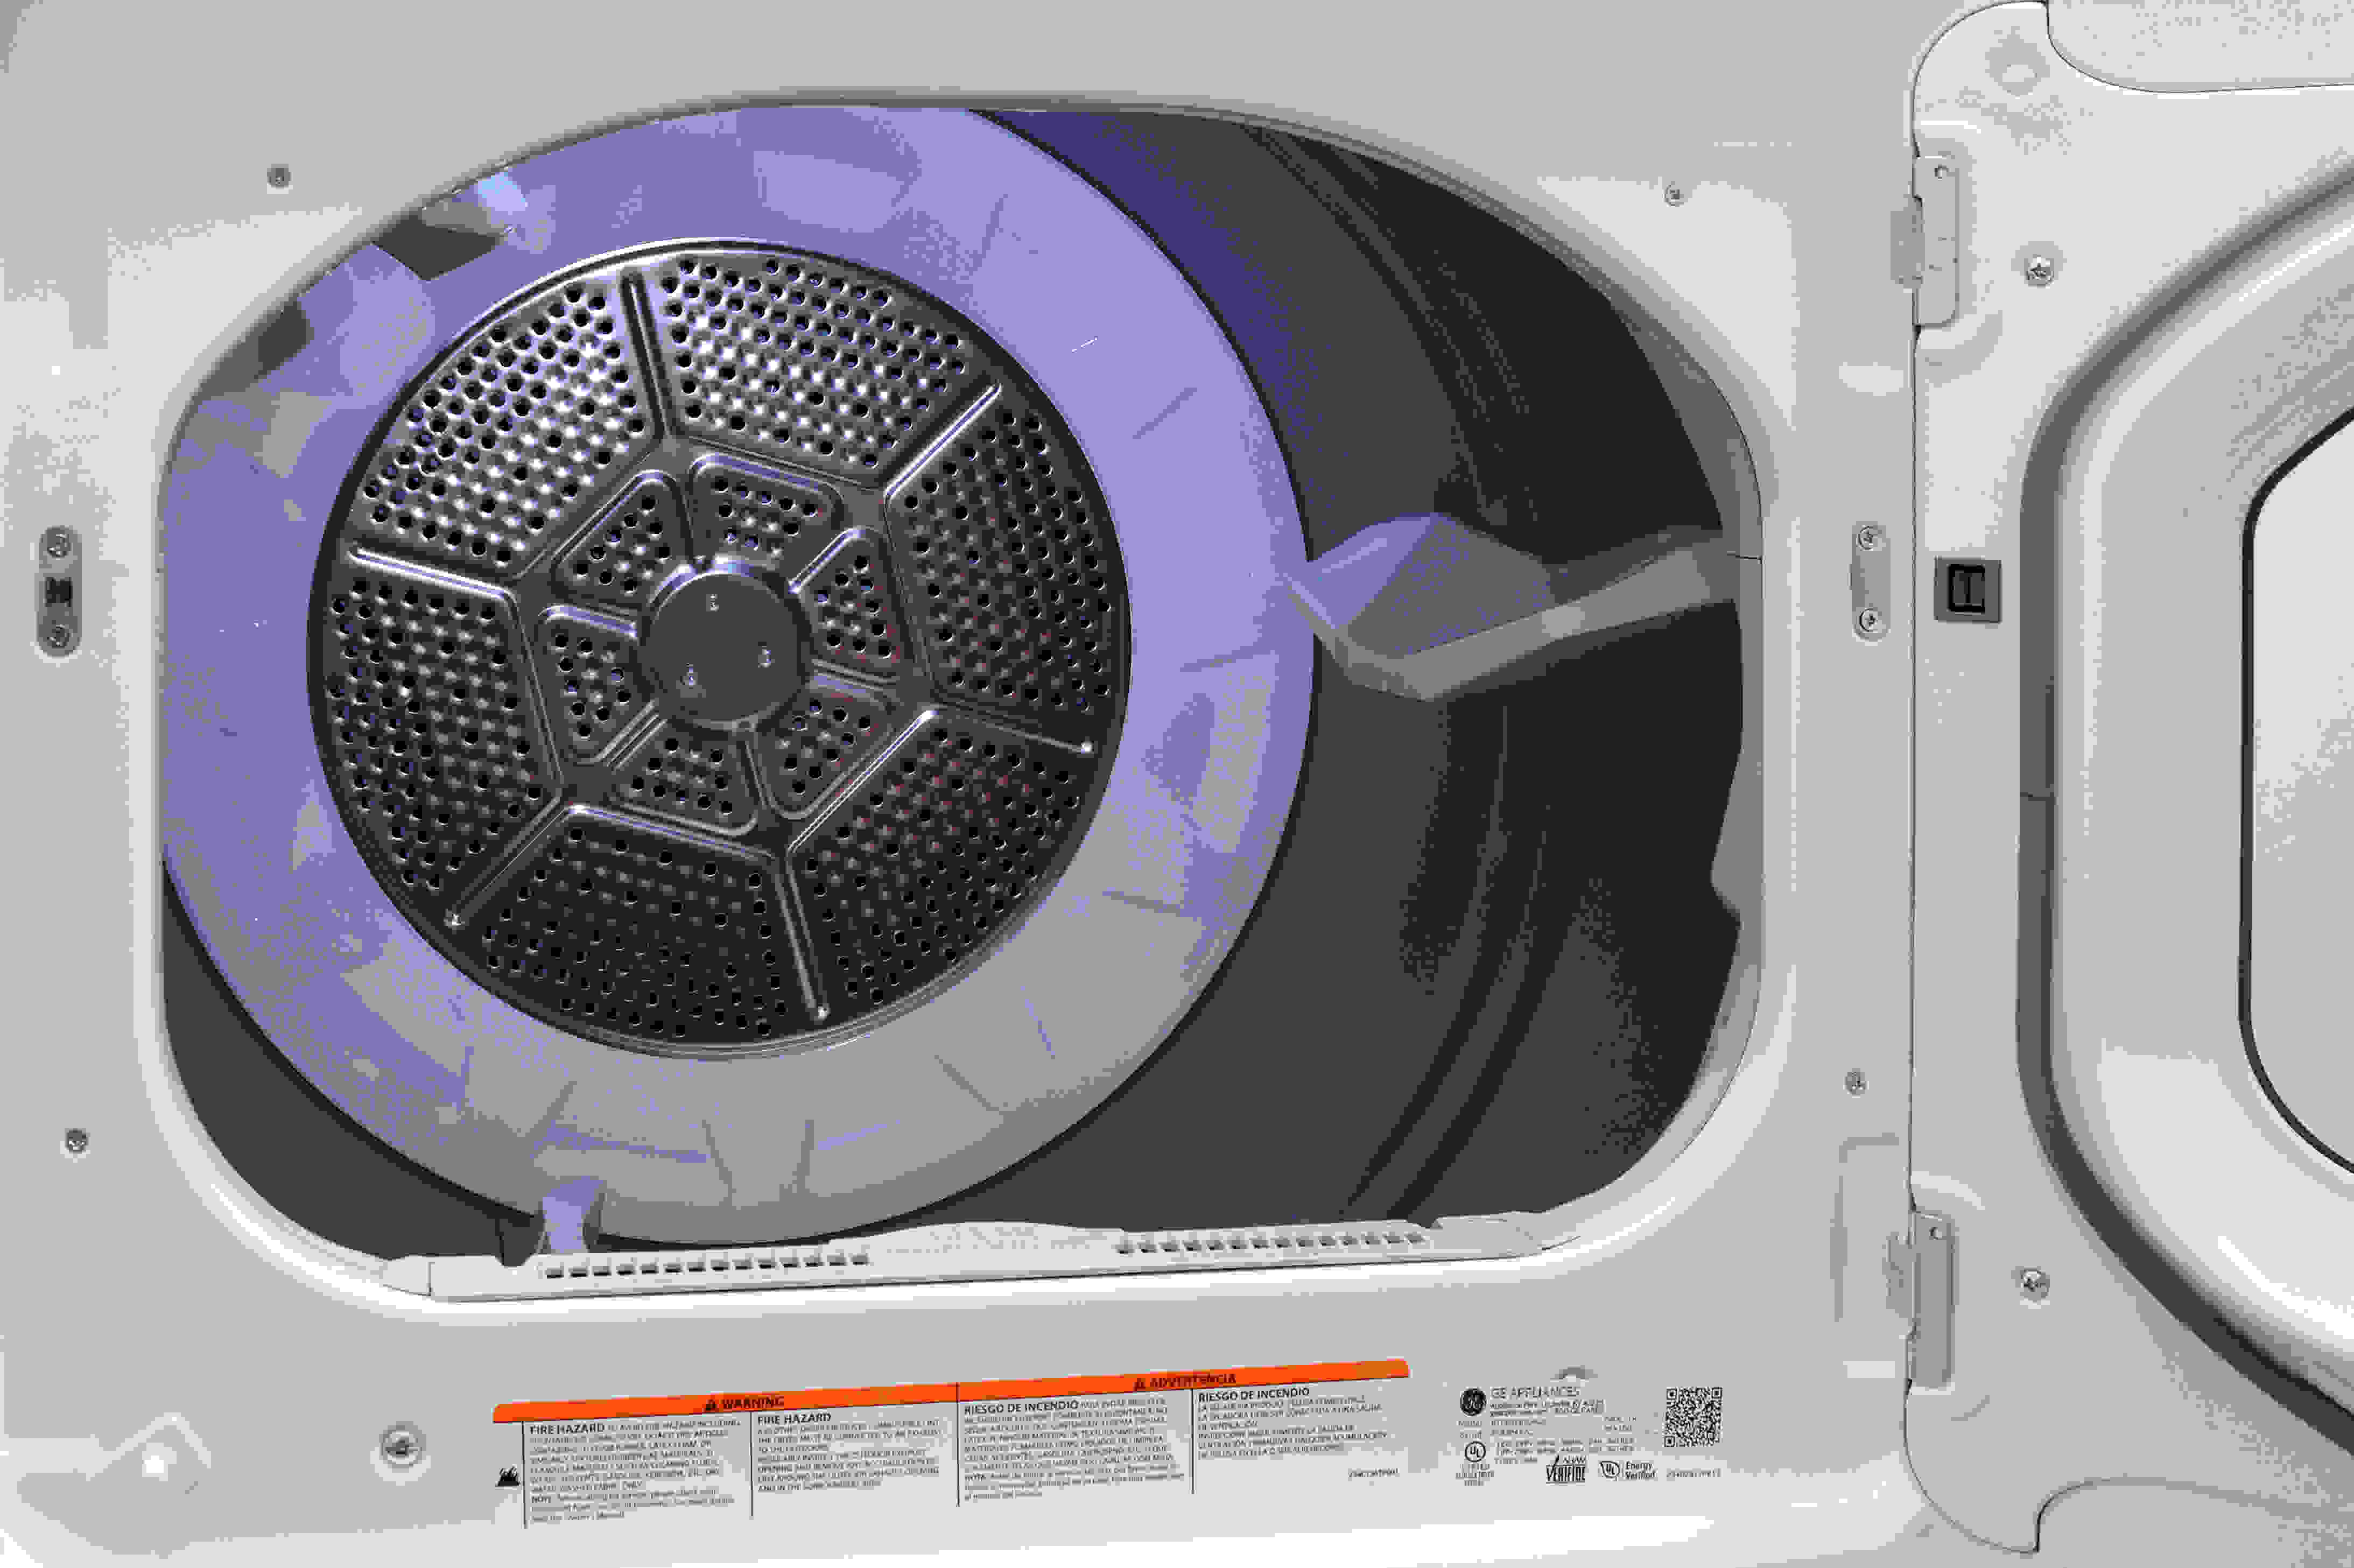 The GE GTD65EBSJWS's LED-lit interior is made of aluminized alloy to prevent corrosion.